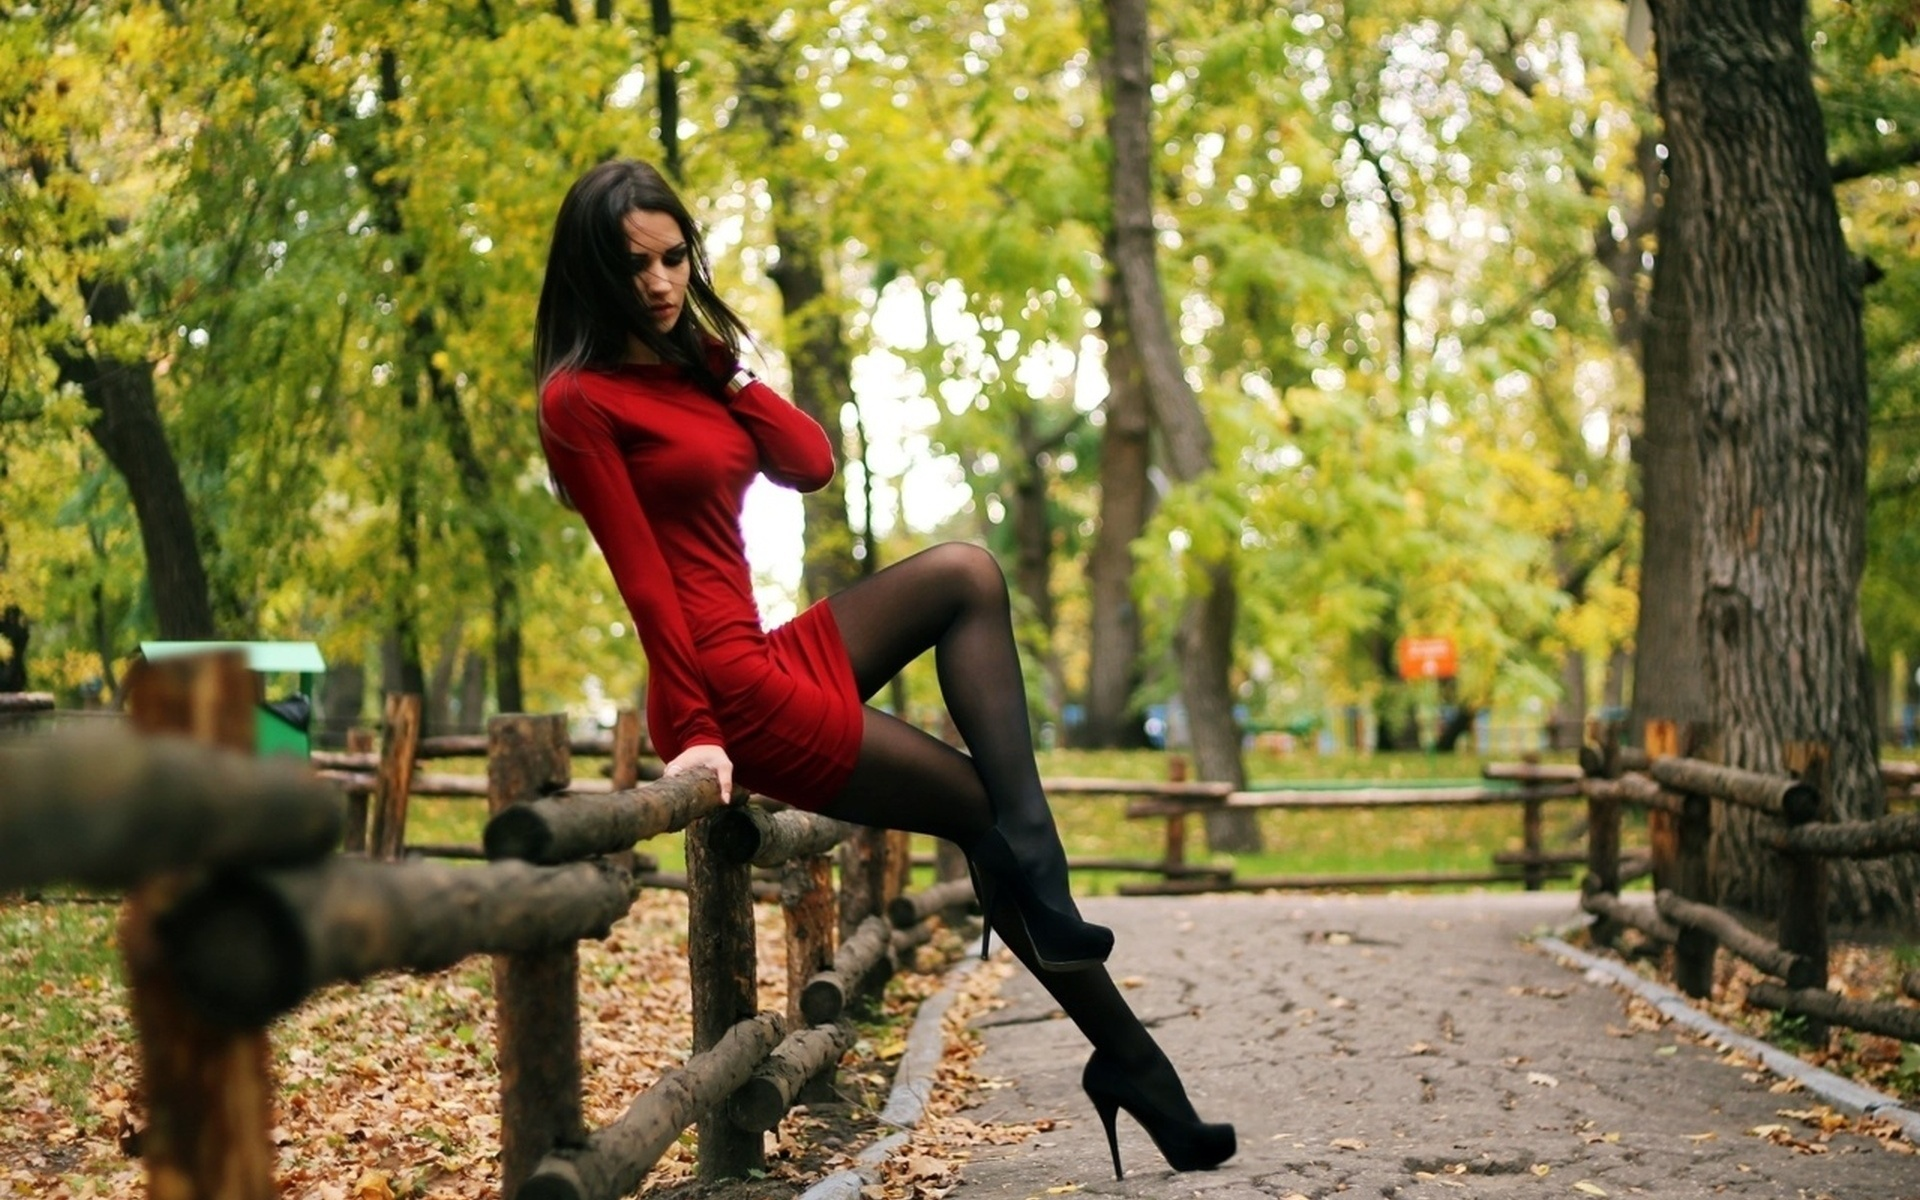 black single women in park hills Meet park hills (missouri) women for online dating contact american girls without registration and payment you may email, chat, sms or call park hills ladies instantly.